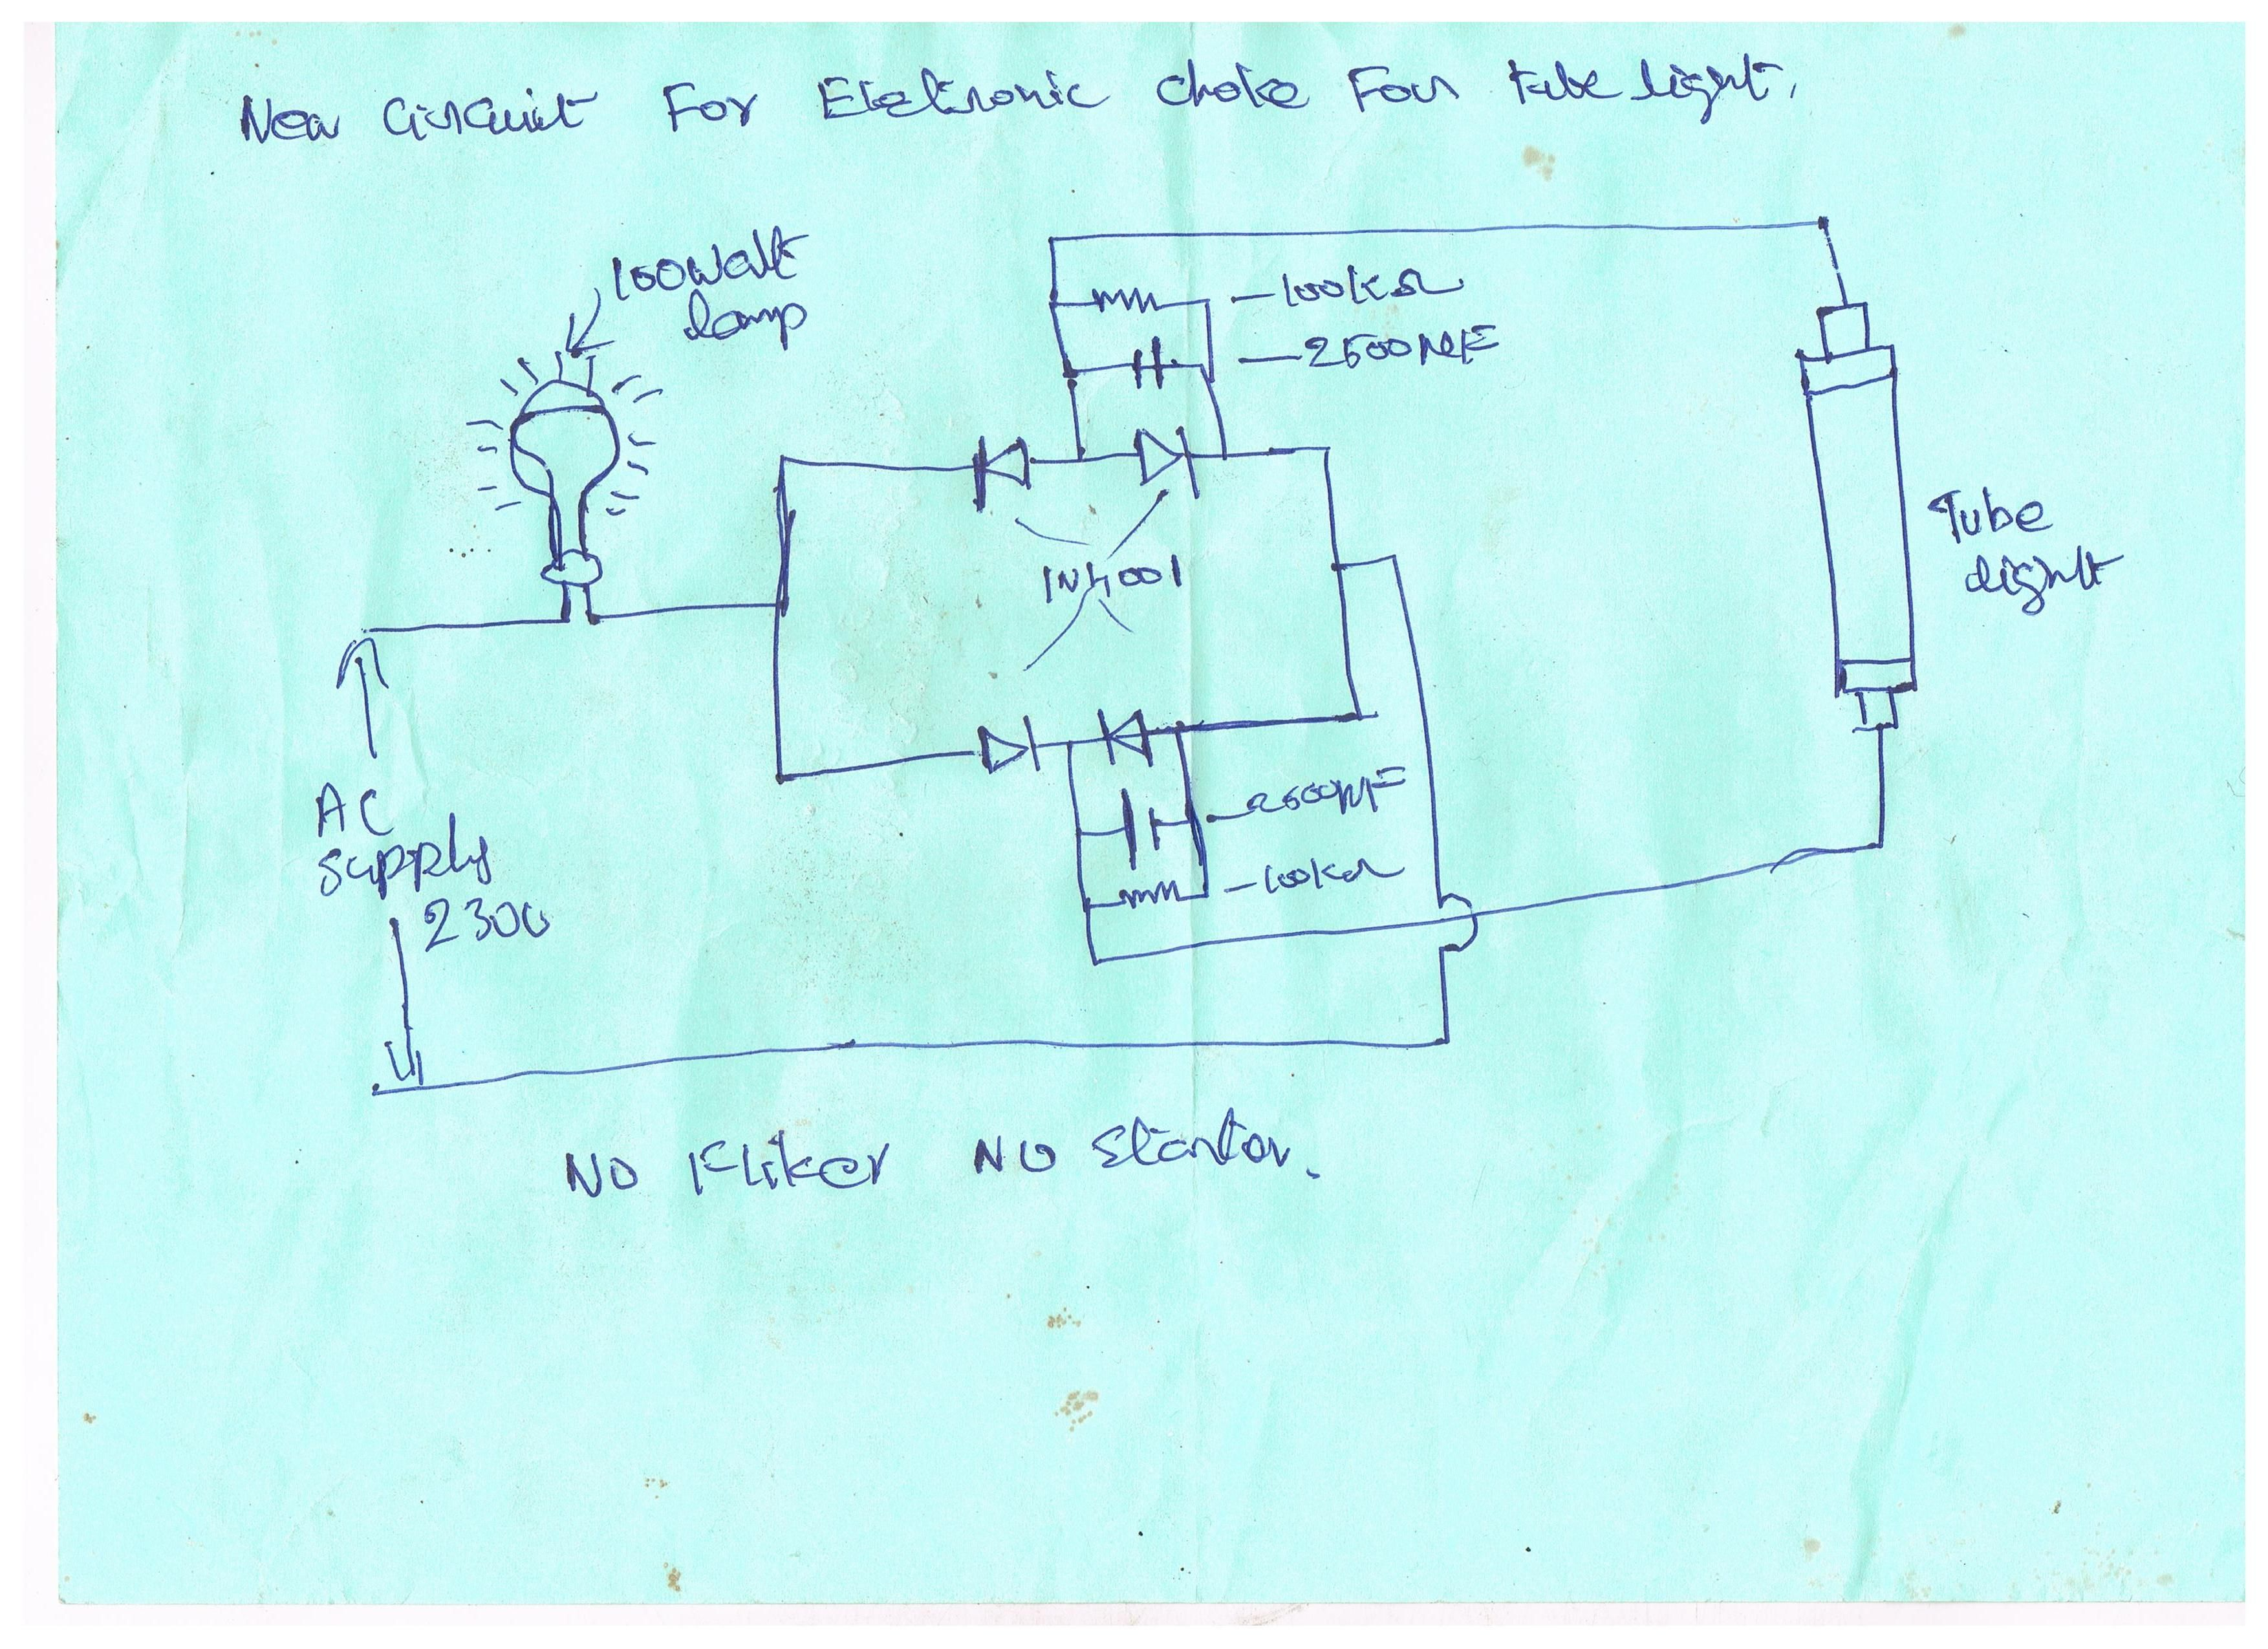 hight resolution of new circuit for electronic choke for tubelight